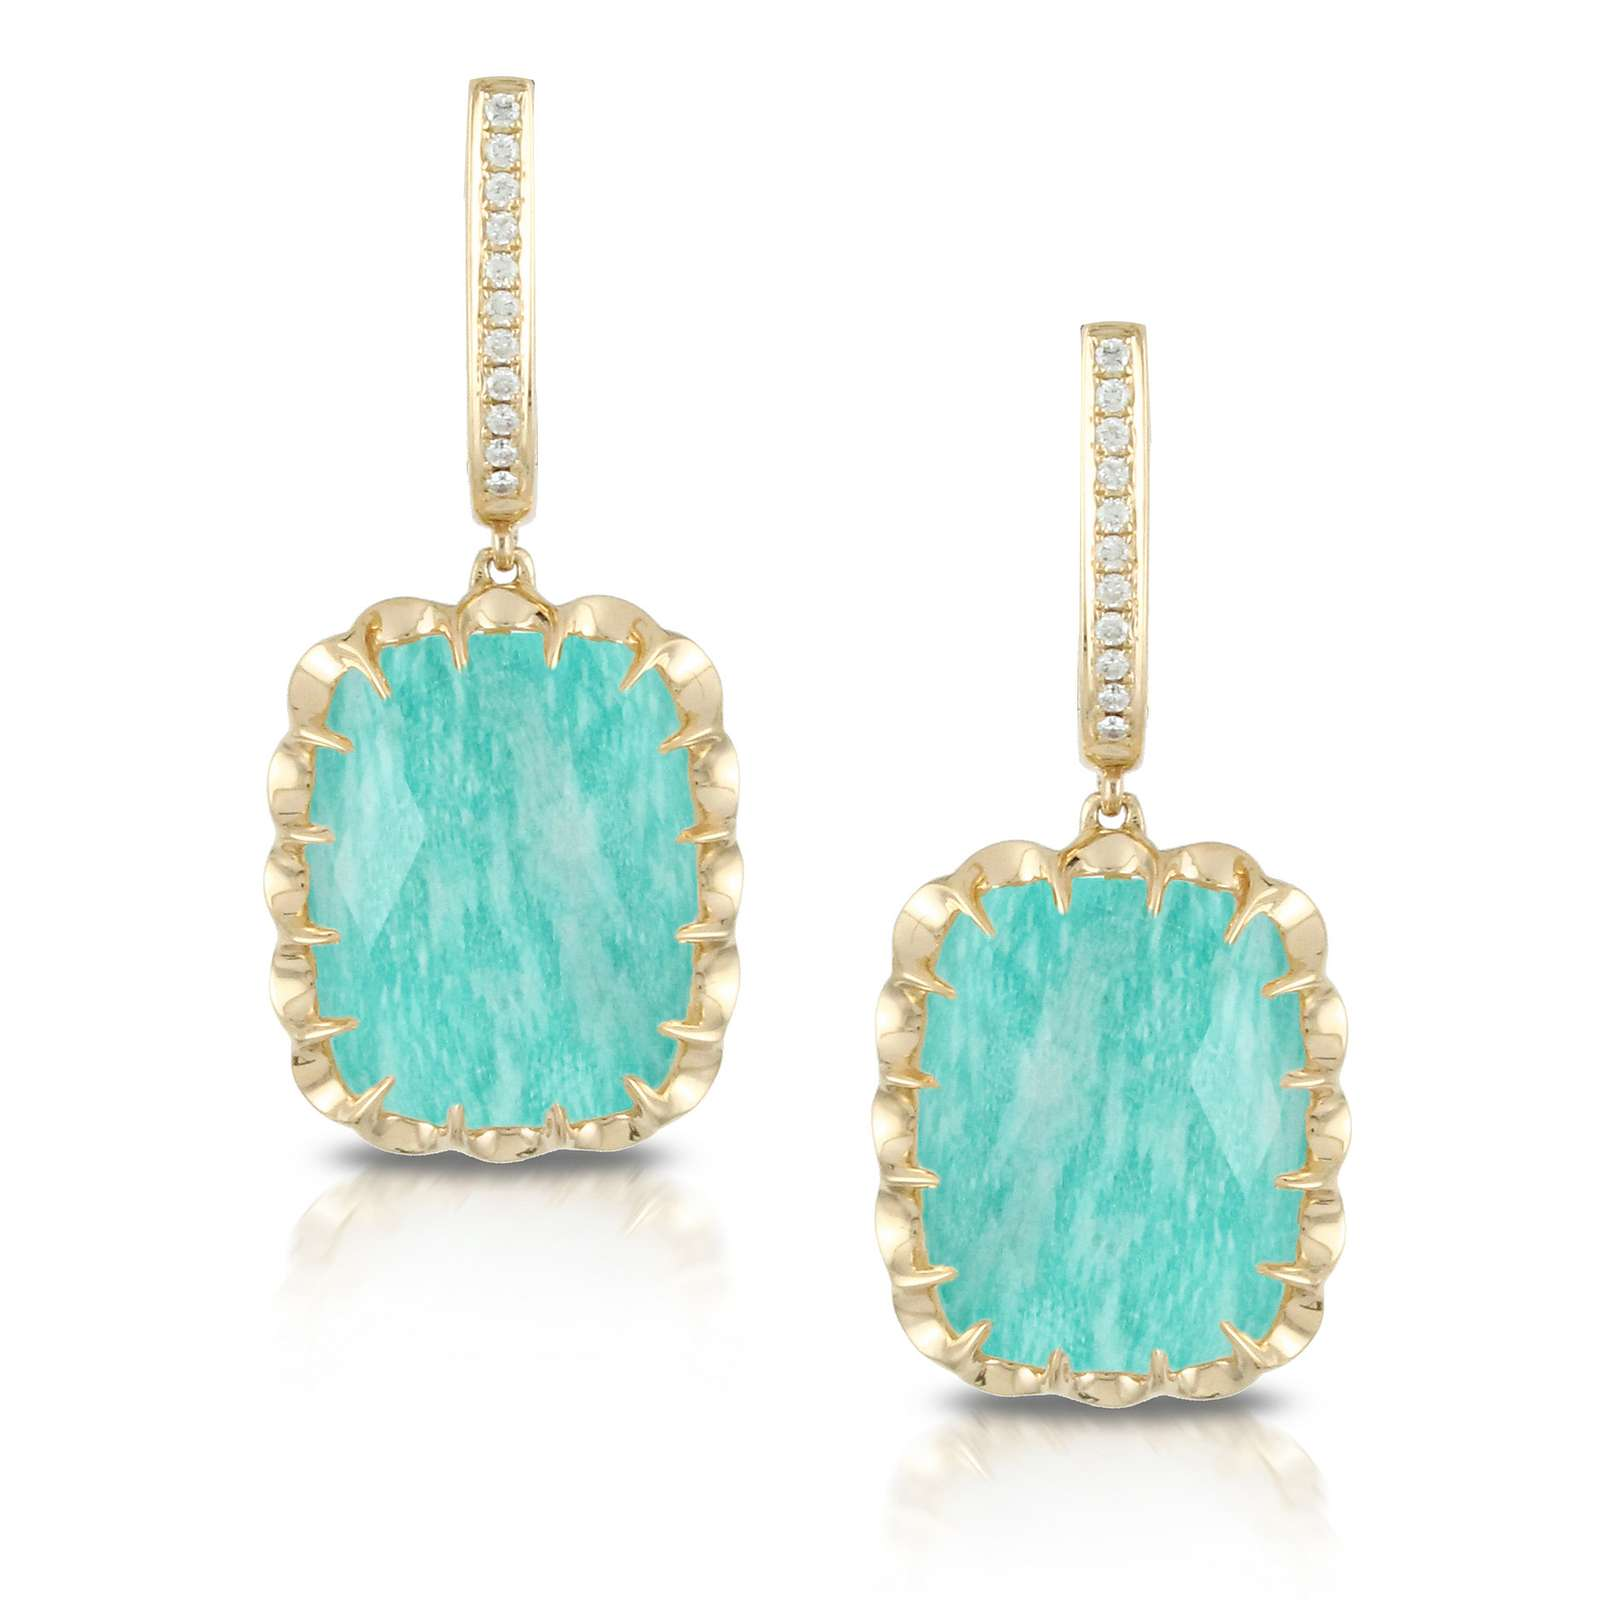 45f588b55 Hooked With 18k Yellow Gold Tiny Claws Clear Quartz Over Amazonite With Diamonds  Earrings - Diamond & Design Public Domain Image